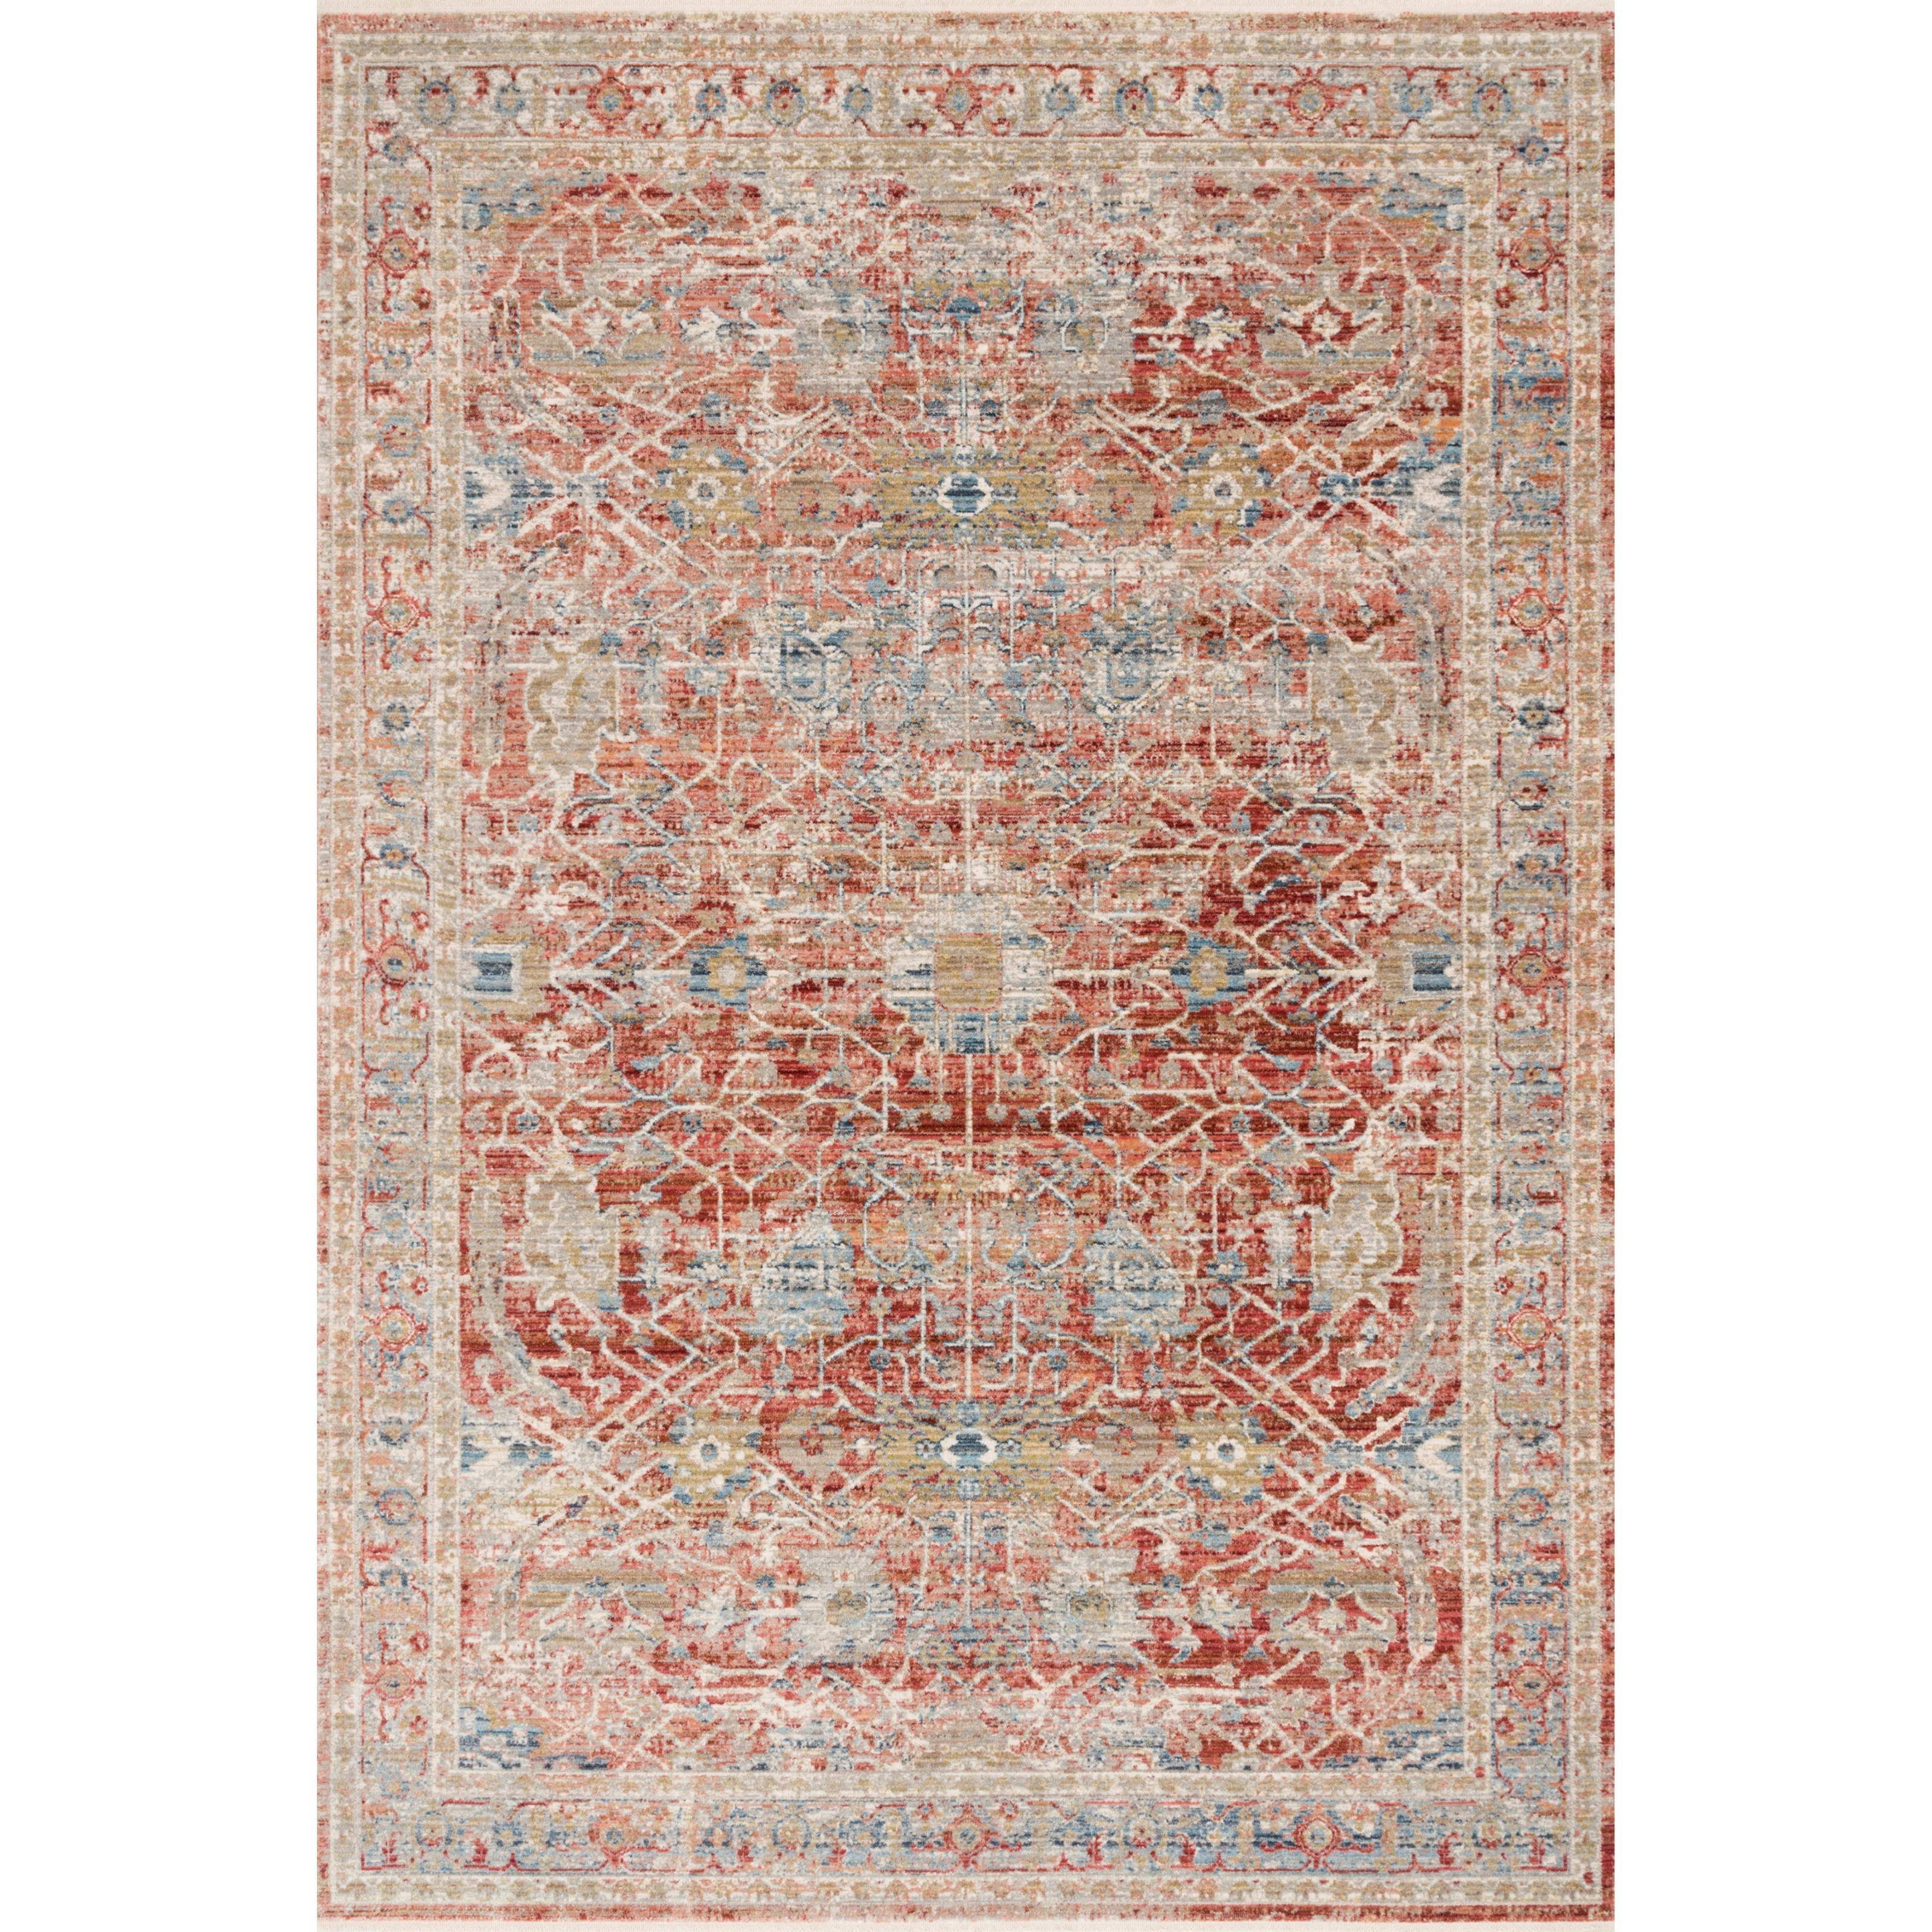 """Claire 9'6"""" x 13' Red / Ivory Rug by Loloi Rugs at Virginia Furniture Market"""